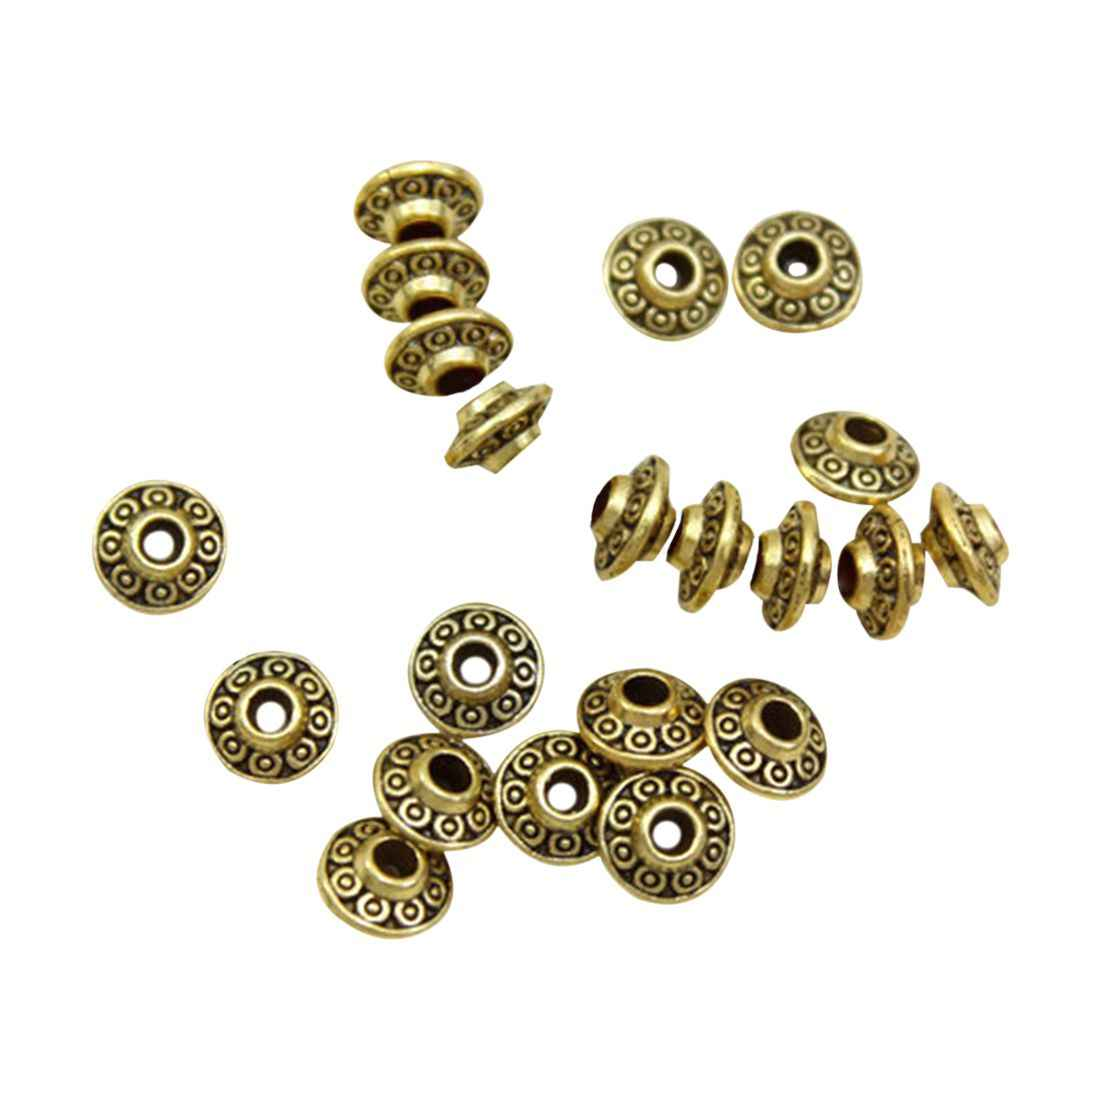 100 x Ton Muster Spacer Perlen 6x4mm Gold